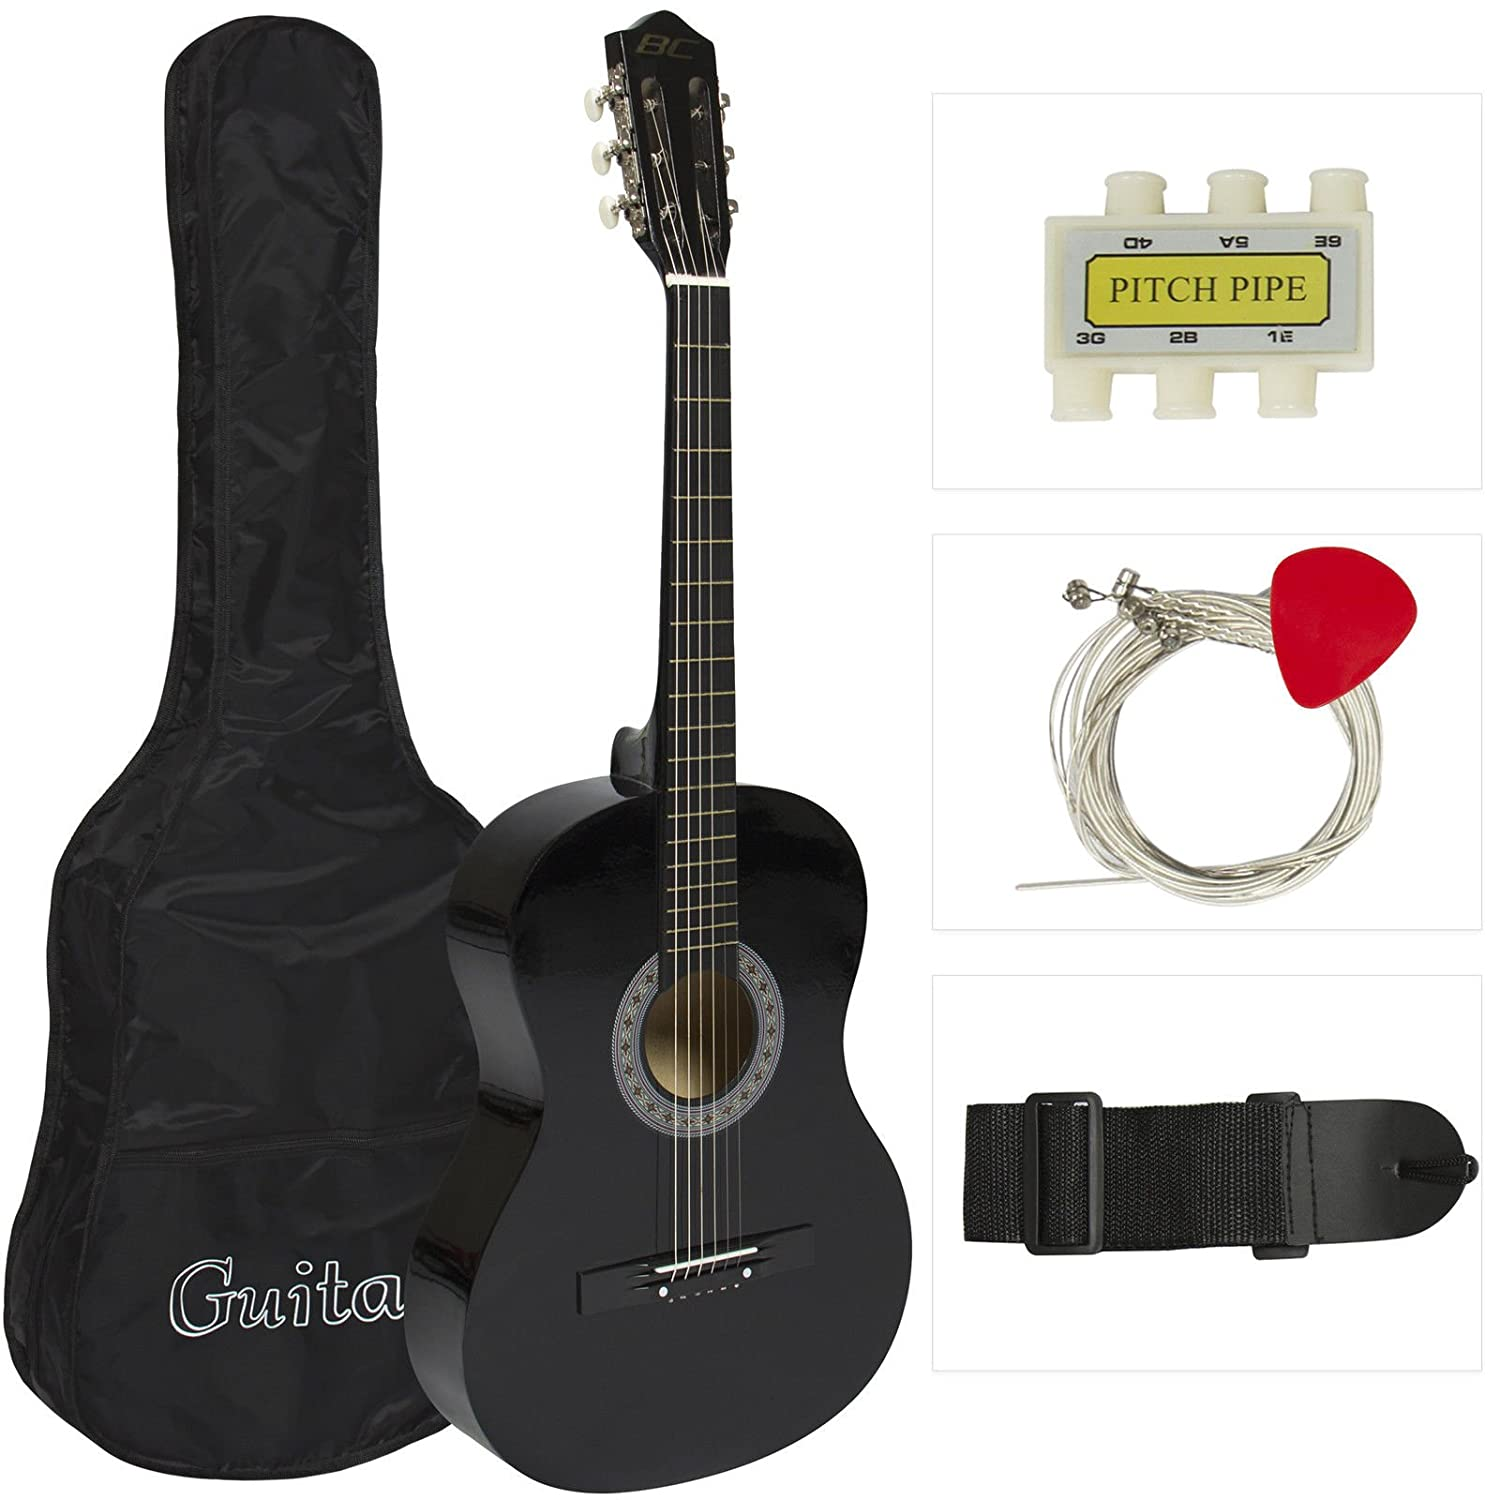 New Beginners Acoustic Guitar With Guitar Case, Strap, Tuner and Pick Black panit2524